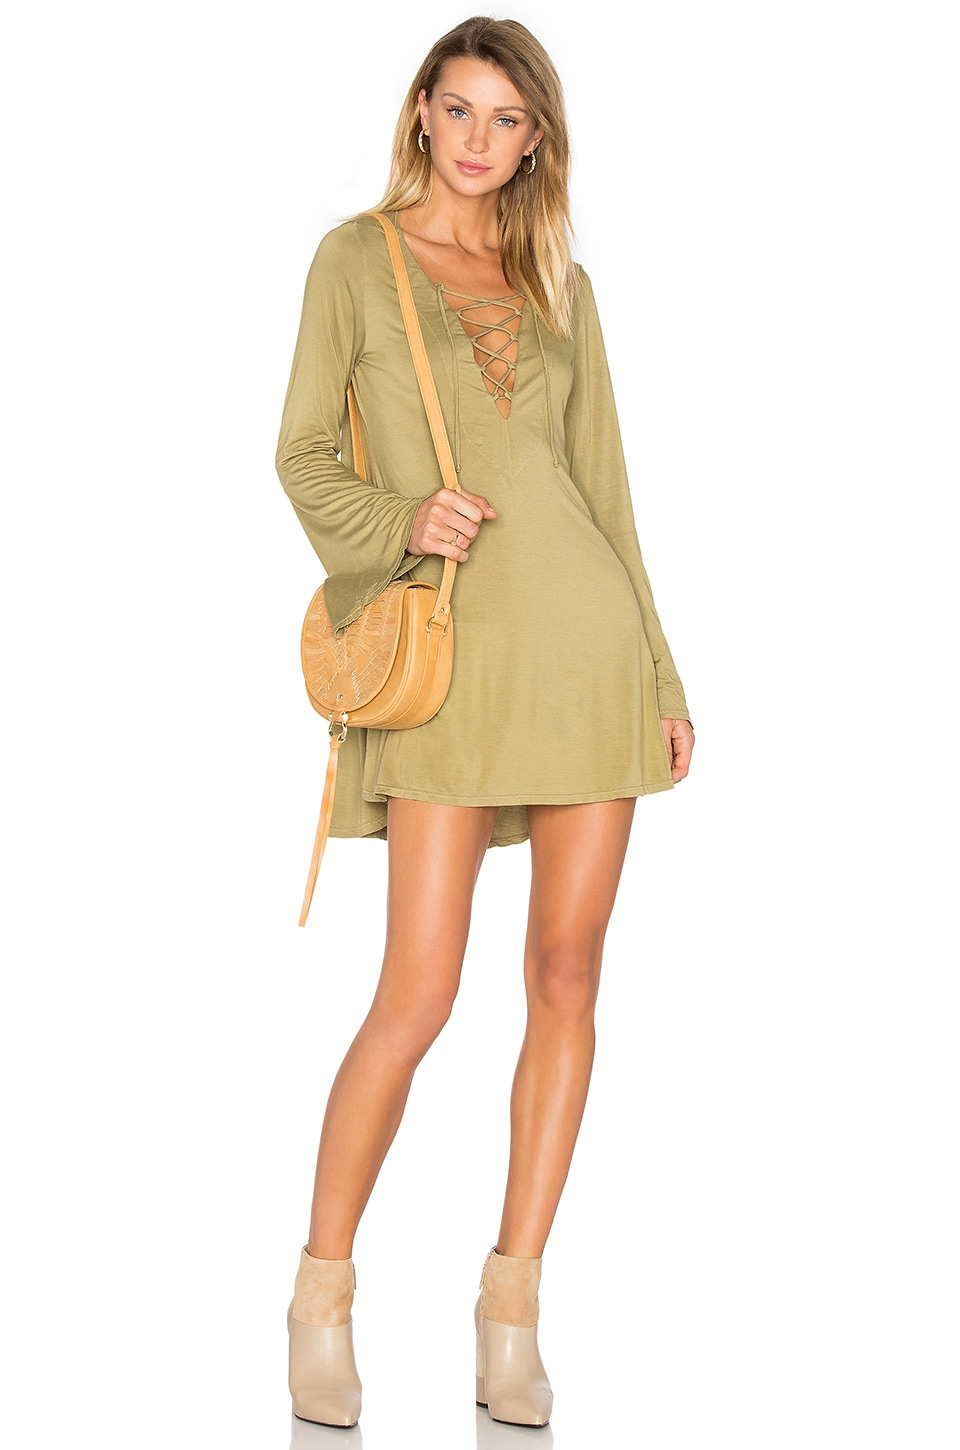 Michael Lauren Jimi Mini Dress in Olive Ash